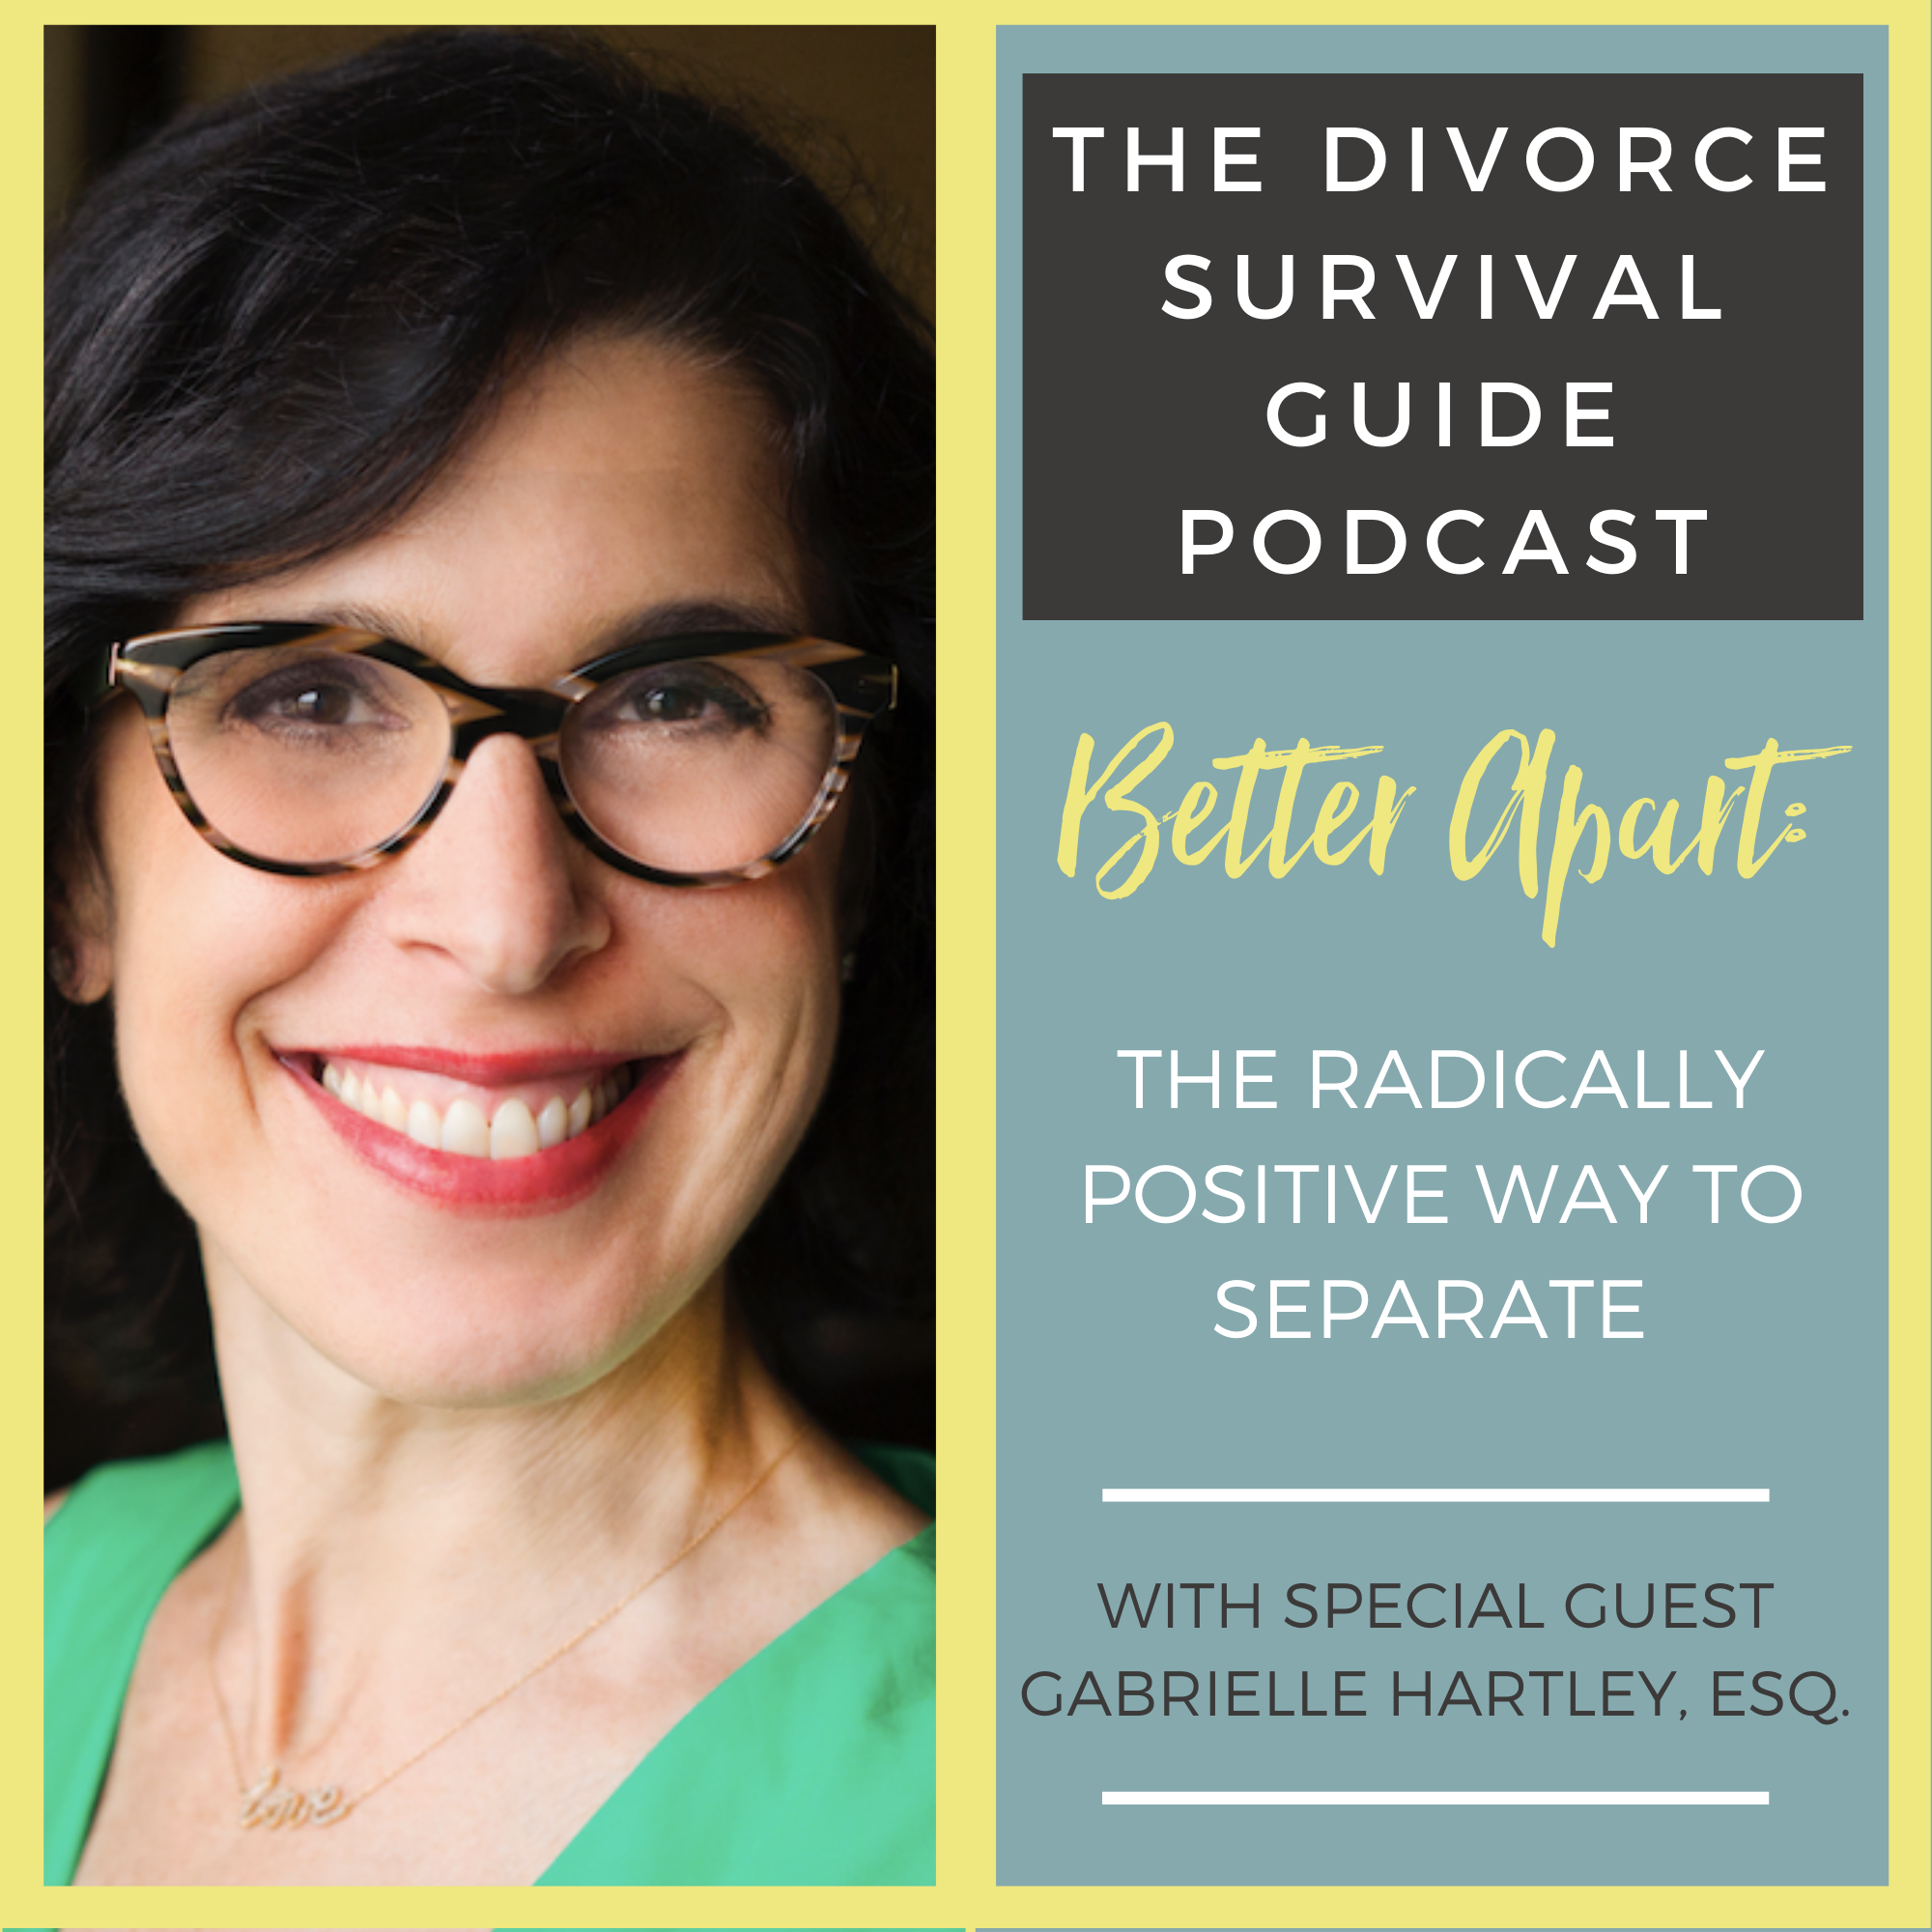 The Divorce Survival Guide Podcast - Better Apart: The Radically Positive Way to Separate with Gabrielle Hartley, Esq.